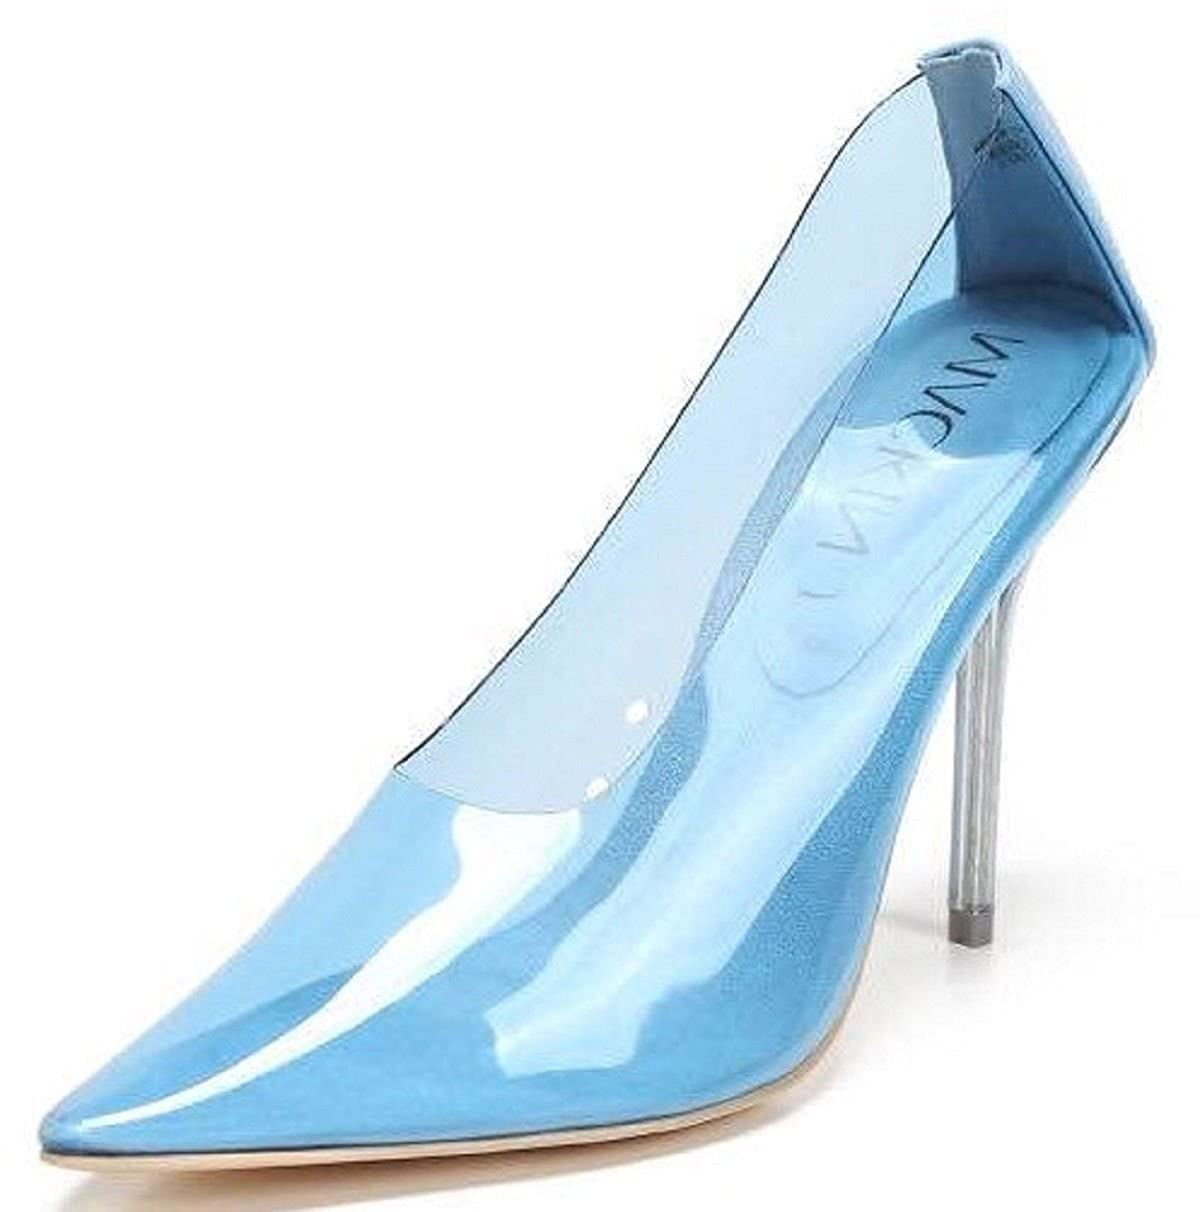 Mackin J 260 1 Transparent Clear Lucite PVC Pointed Pointy Toe Stiletto High Heel Pump Blue